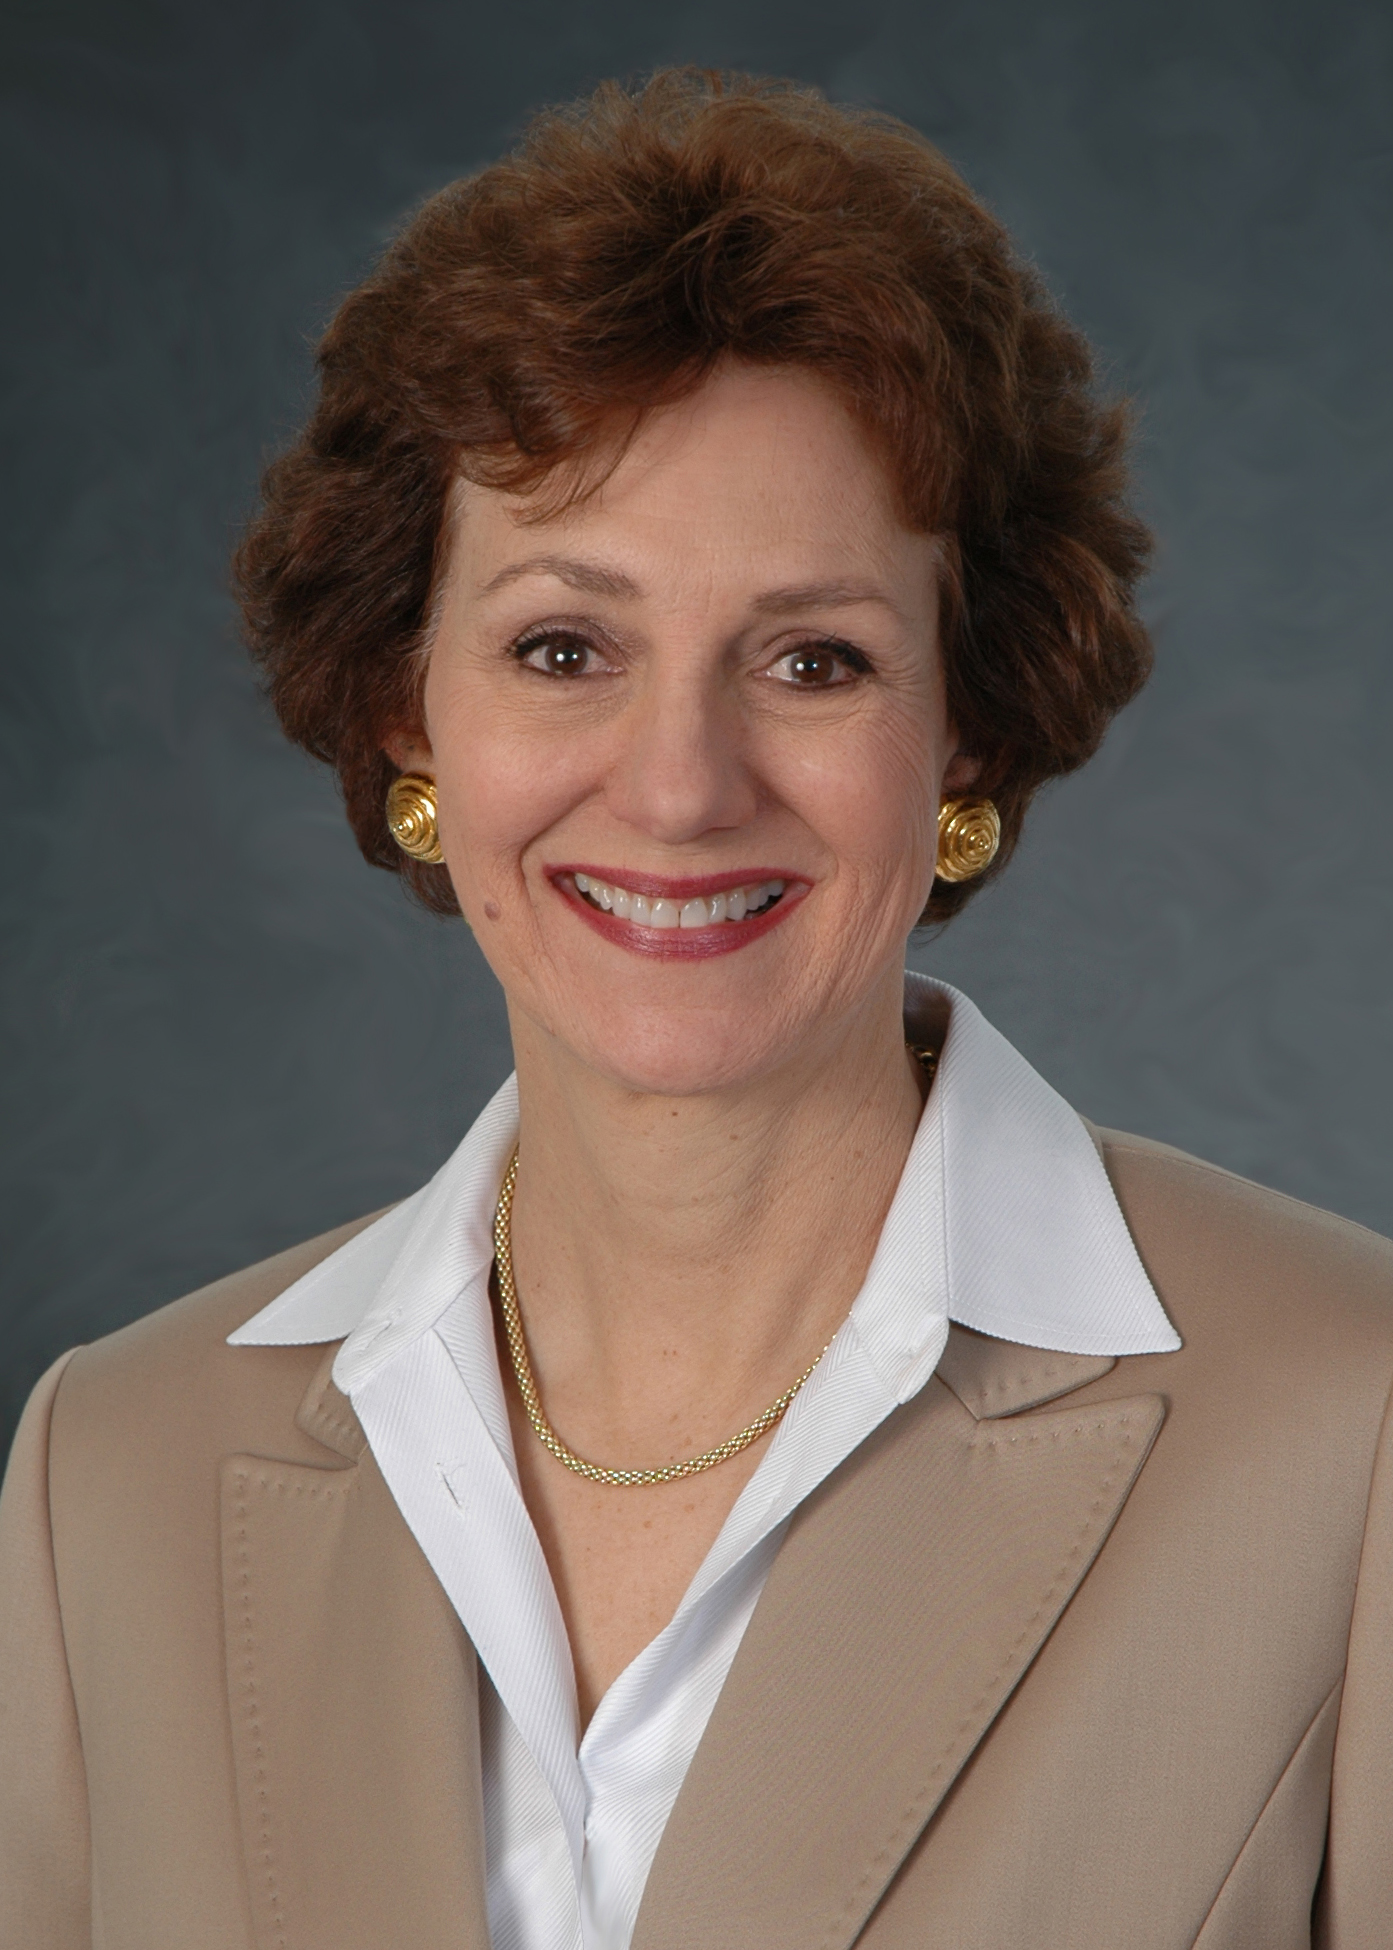 Susan Combs to hold Town Hall meetig in Weatherford ...